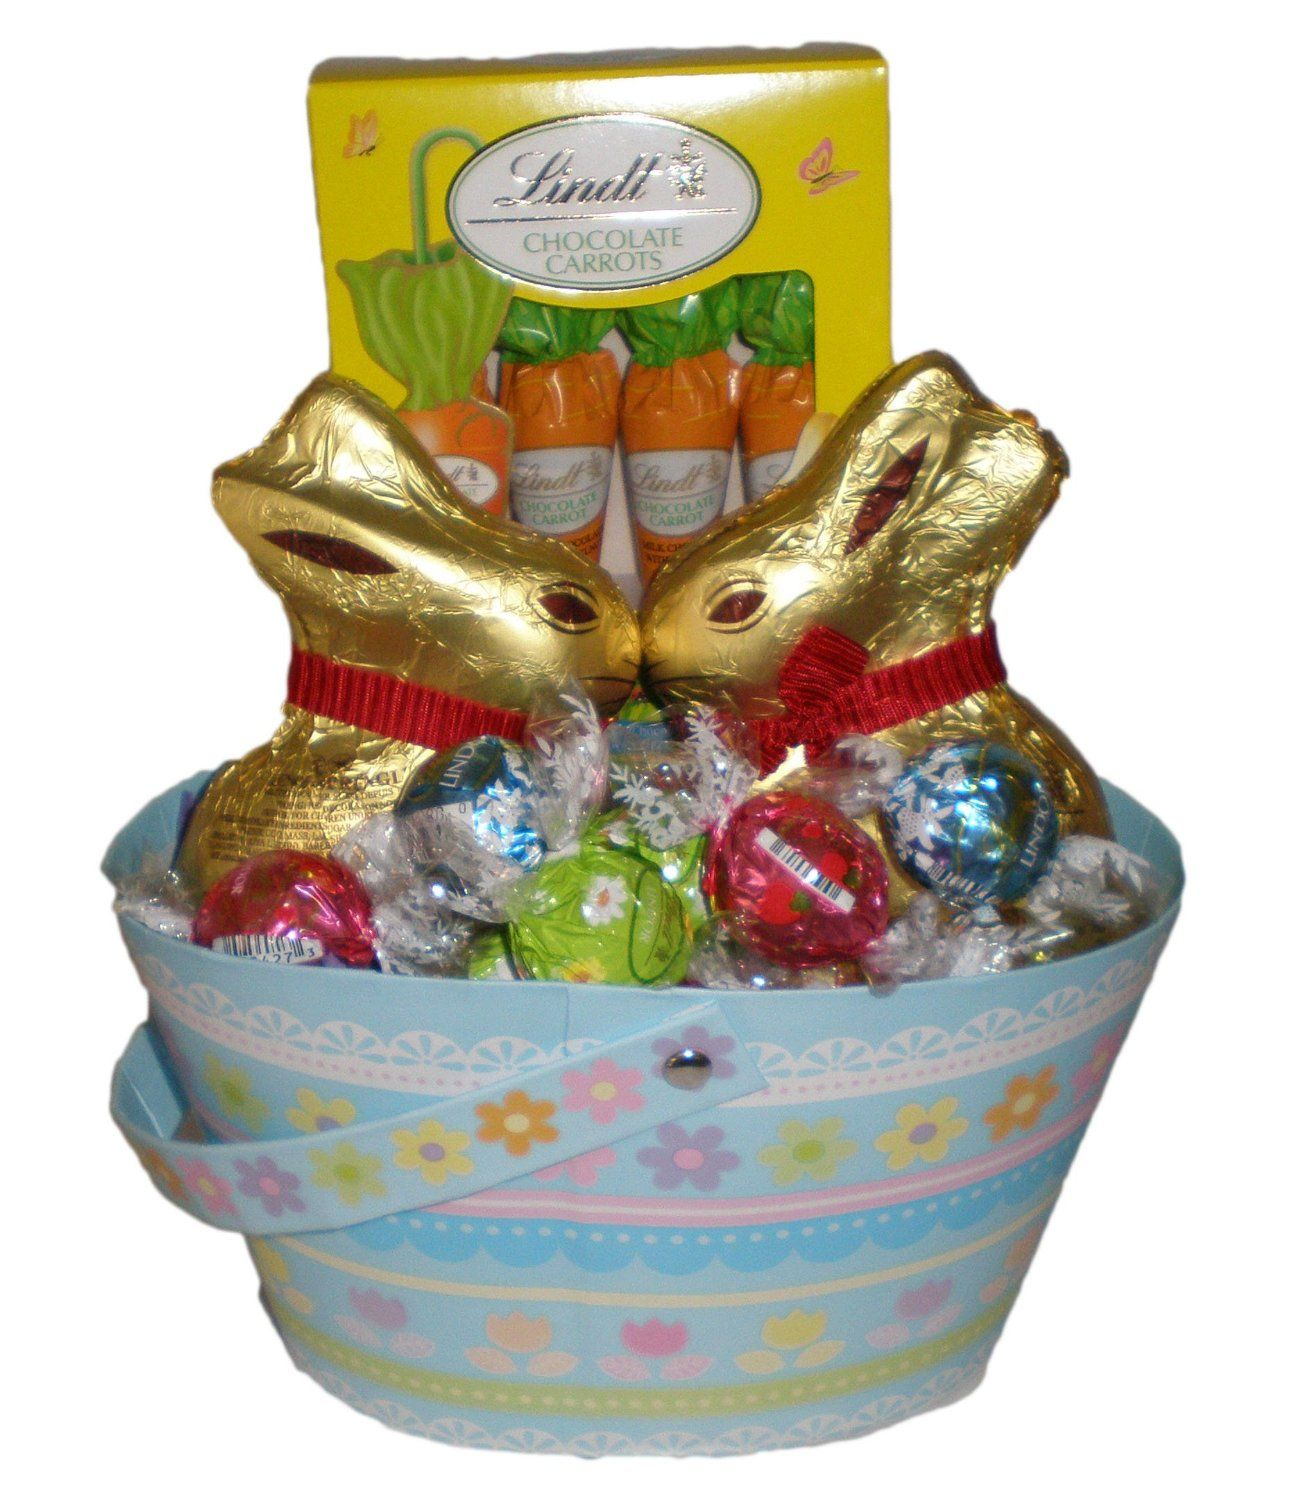 Happy easter lindt chocolate truffles bunnyand carrots gift happy easter lindt chocolate truffles bunnyand carrots gift basket amazon negle Image collections